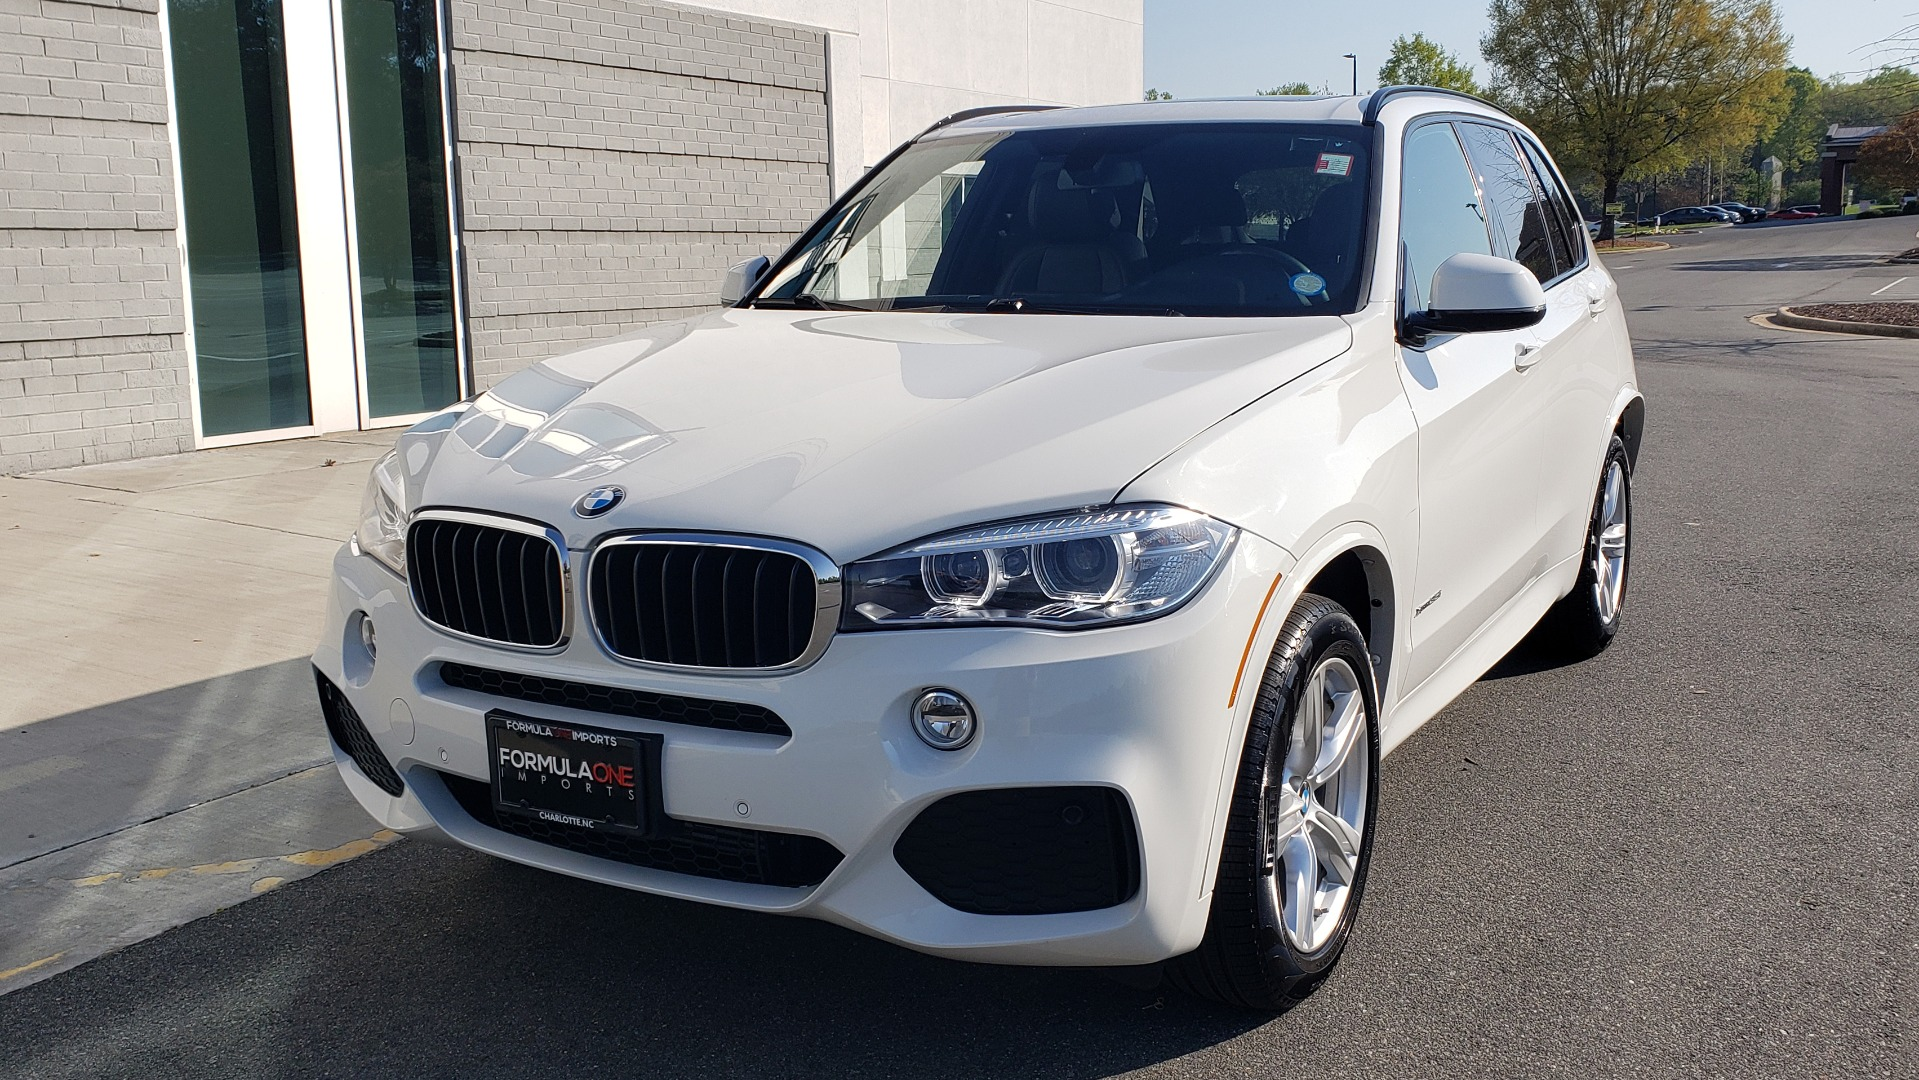 Used 2018 BMW X5 XDRIVE35I / M-SPORT / NAV / SUNROOF / H/K SND / REARVIEW for sale Sold at Formula Imports in Charlotte NC 28227 5